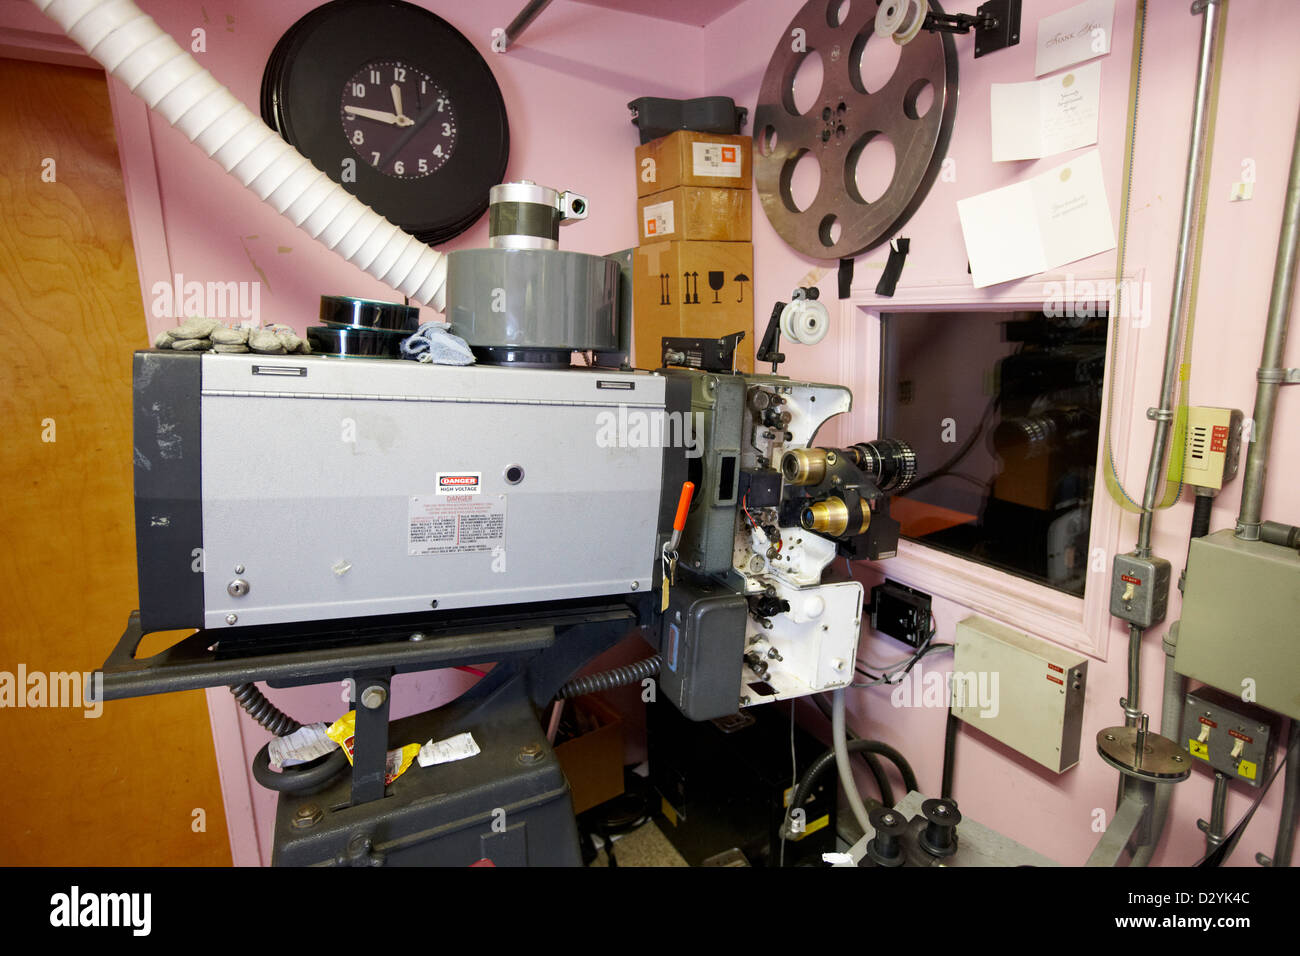 super lume-x lamphouse film projector in old cinema projection room Biggar Saskatchewan Canada - Stock Image